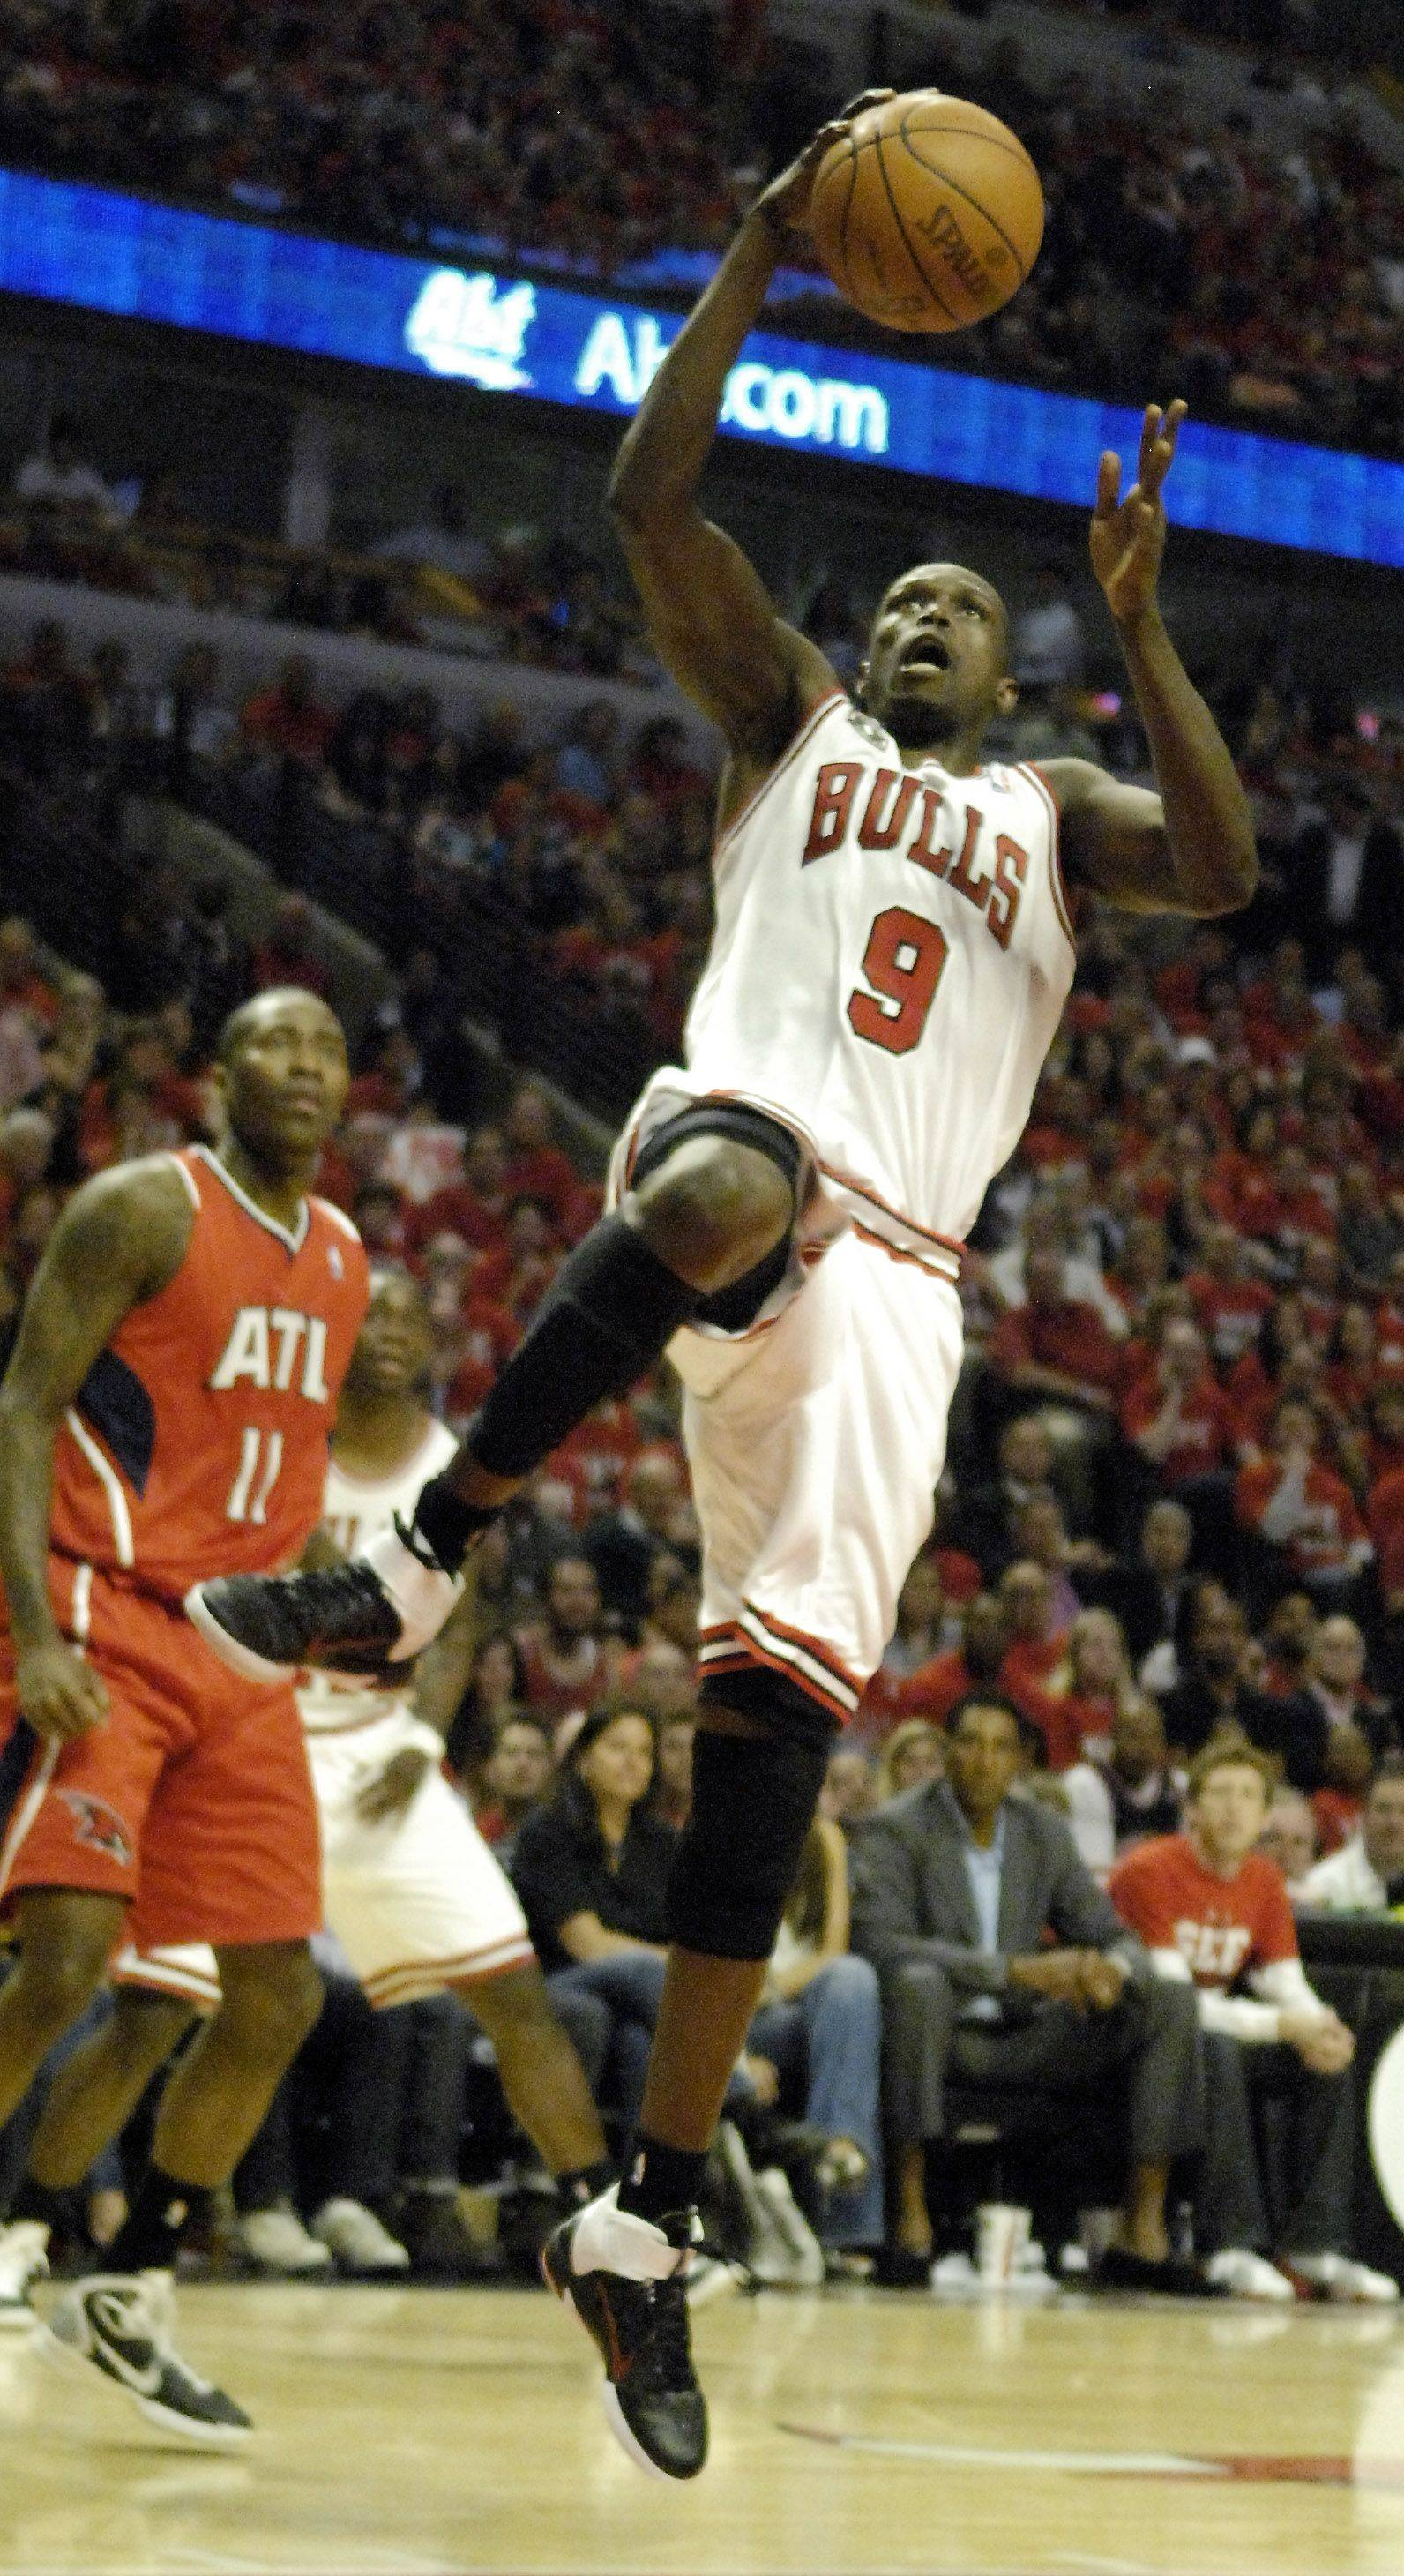 Chicago Bulls small forward Luol Deng drives to the hoop for a layup against the Atlanta Hawks in Chicago Tuesday.